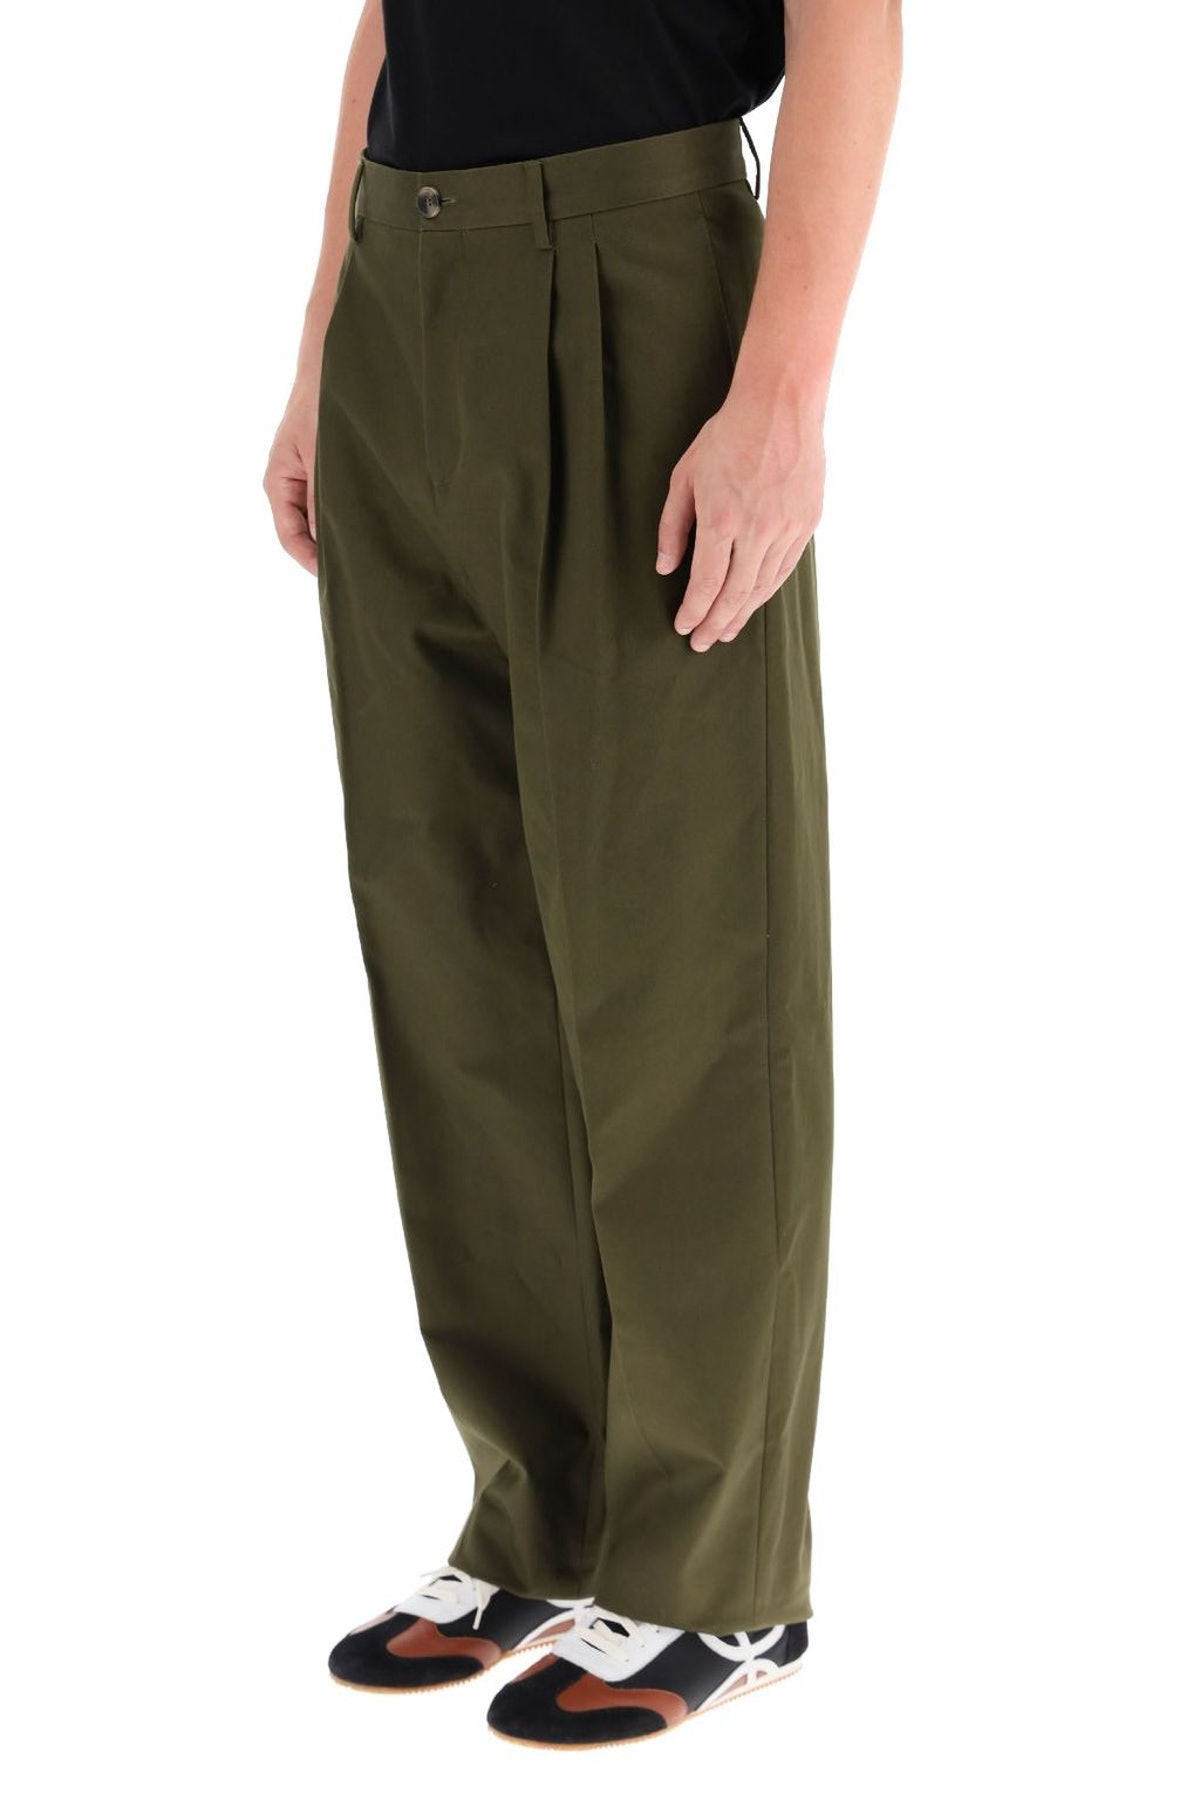 Loewe Chino Trousers Anagram Embroidery: image 1